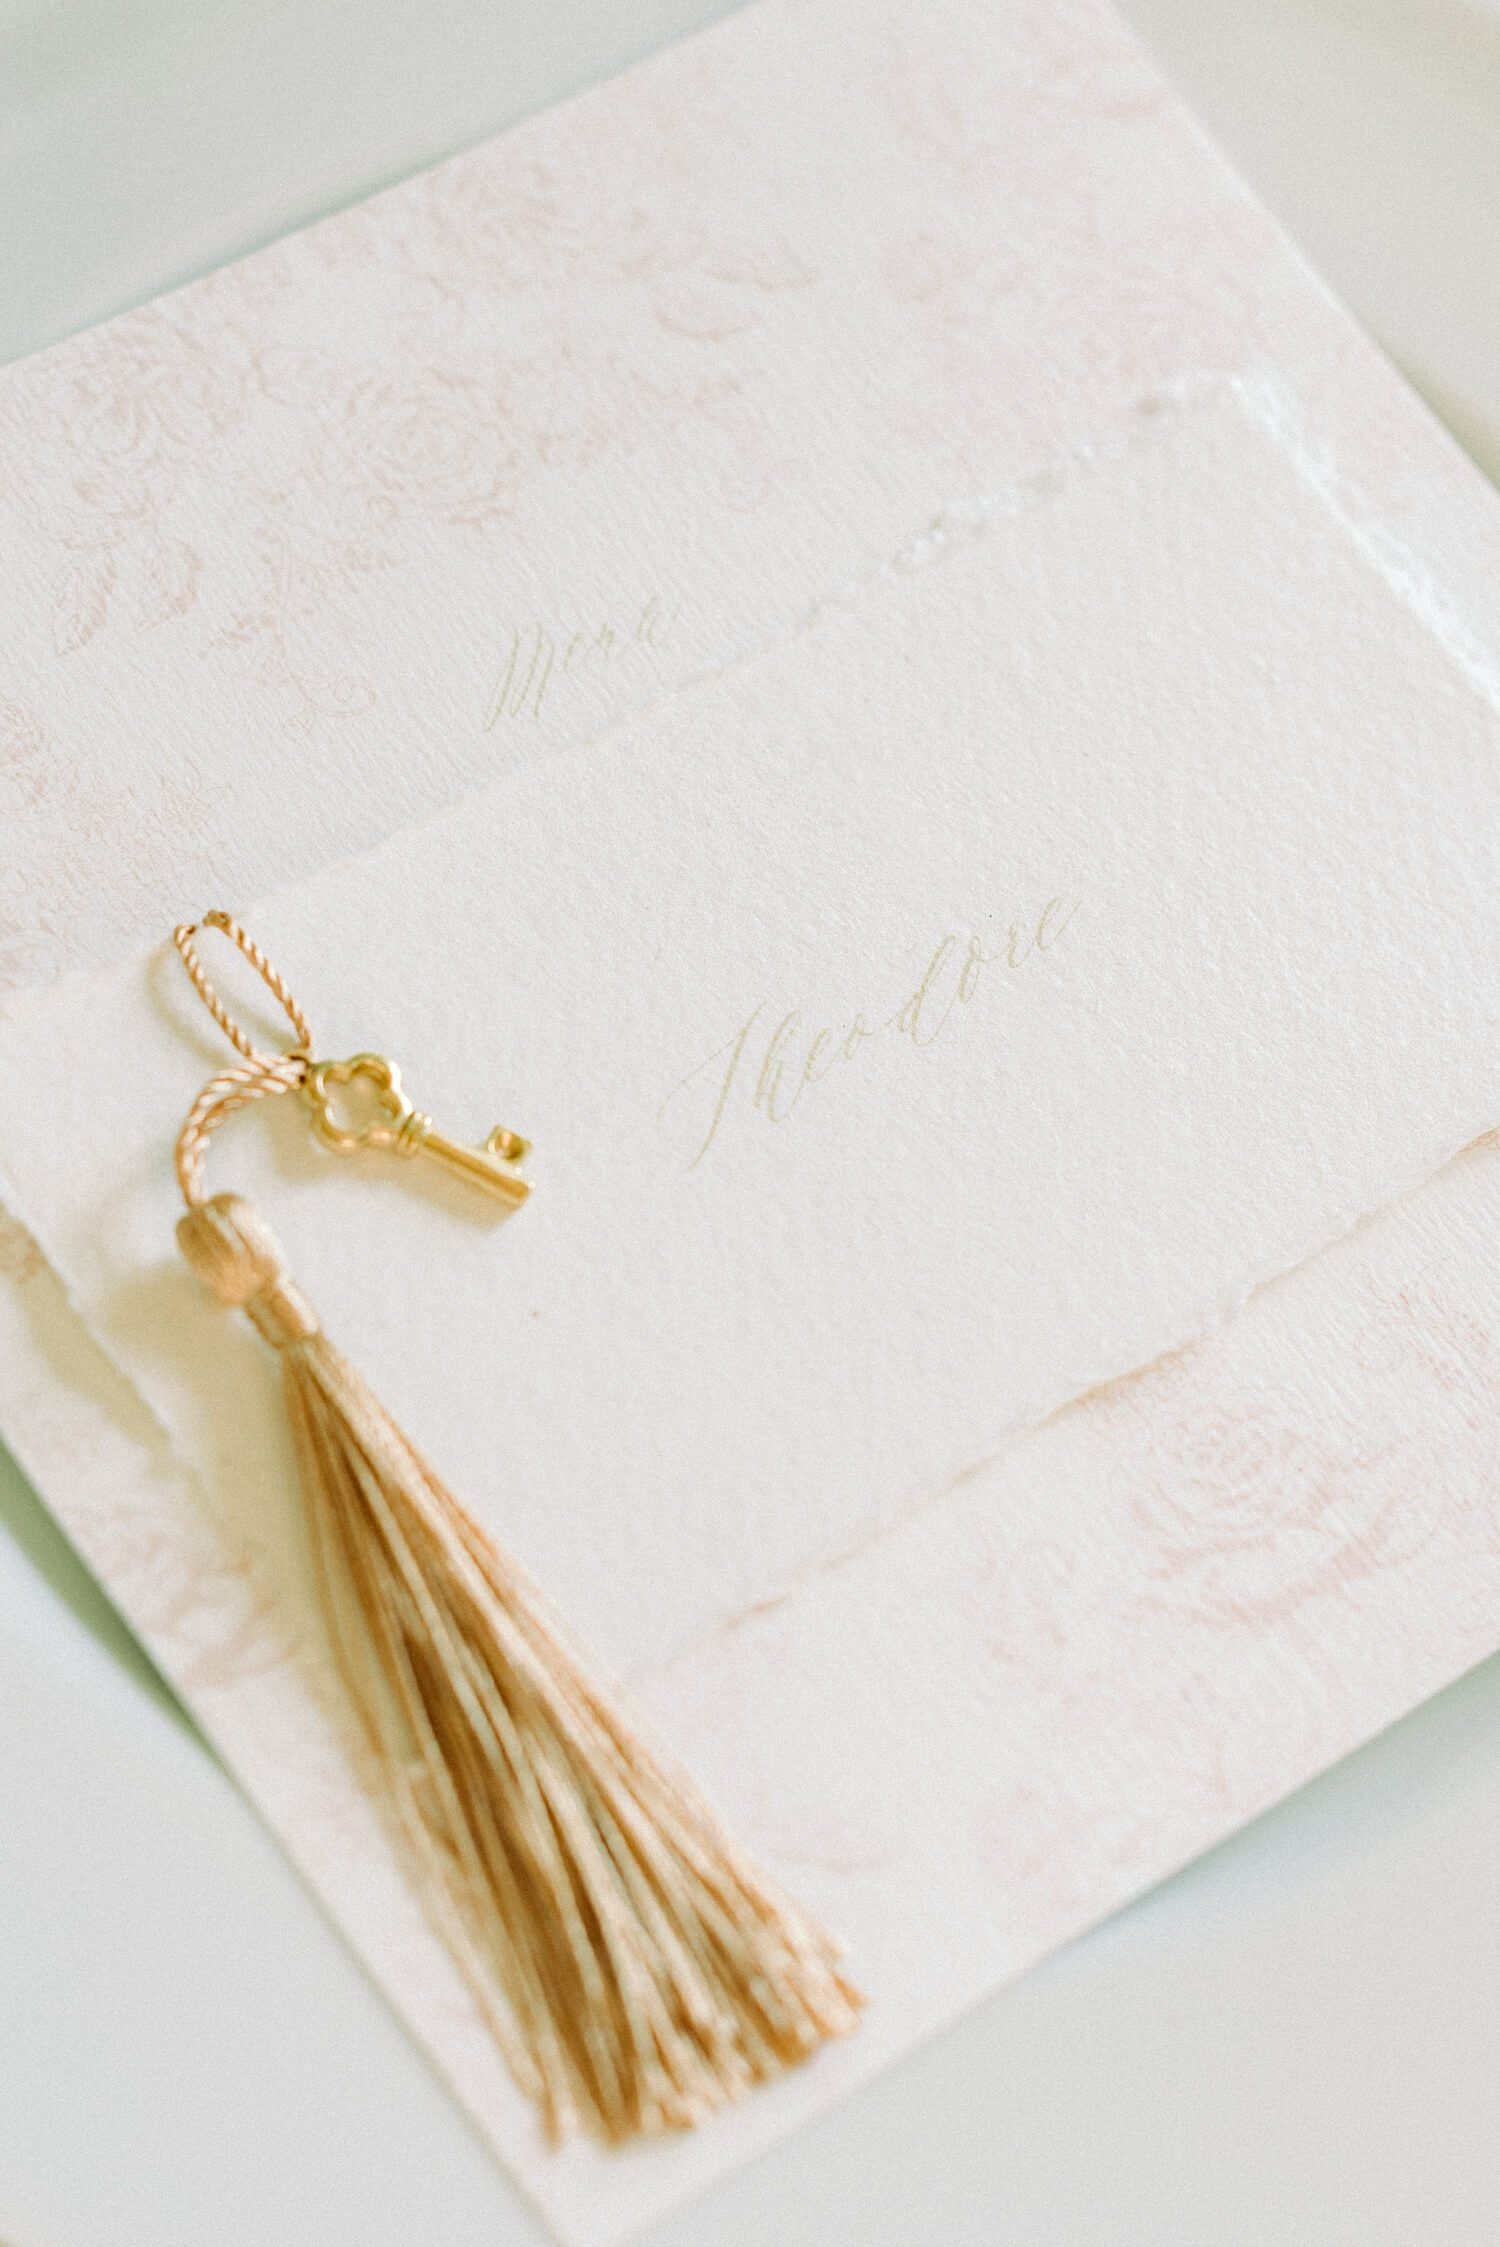 Katie Sue Design Co handmade Paper Place setting with gold tassel and key for Thicket Priory wedding editorial by Cristina Ilao www.cristinailao.com